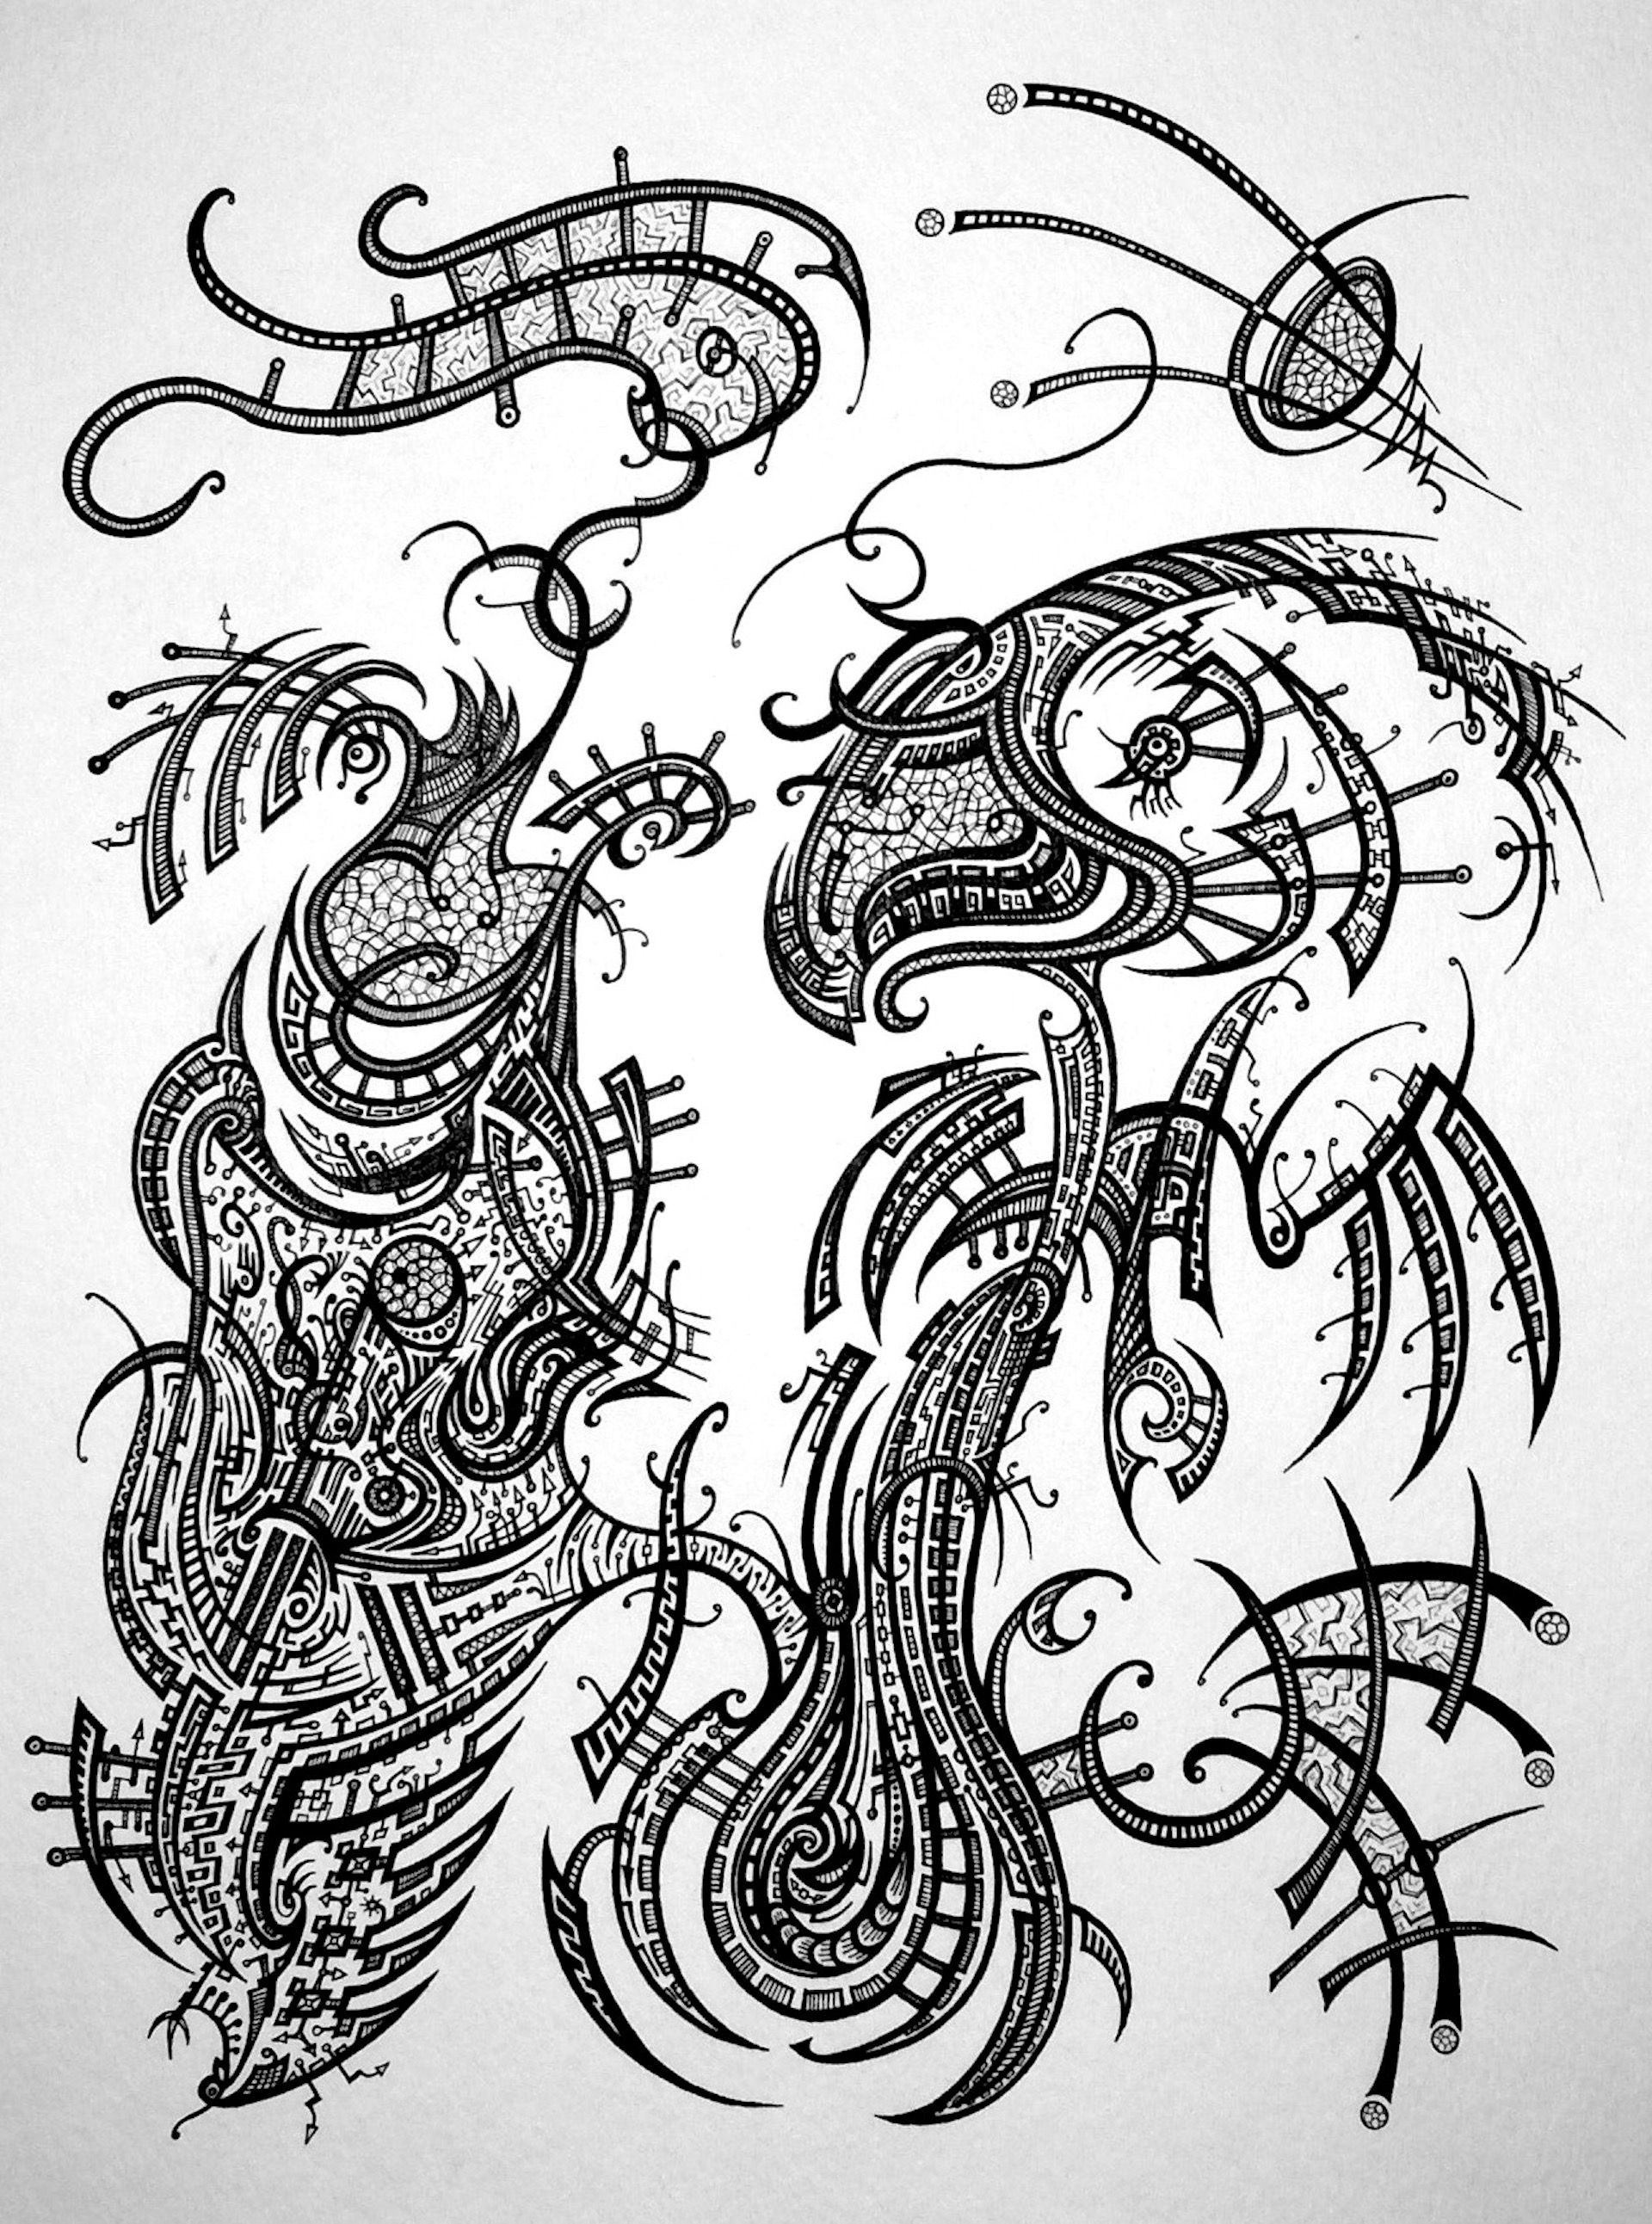 Birds of a Feather. Ink on watercolor paper, 15 x 11 inches. 2015.